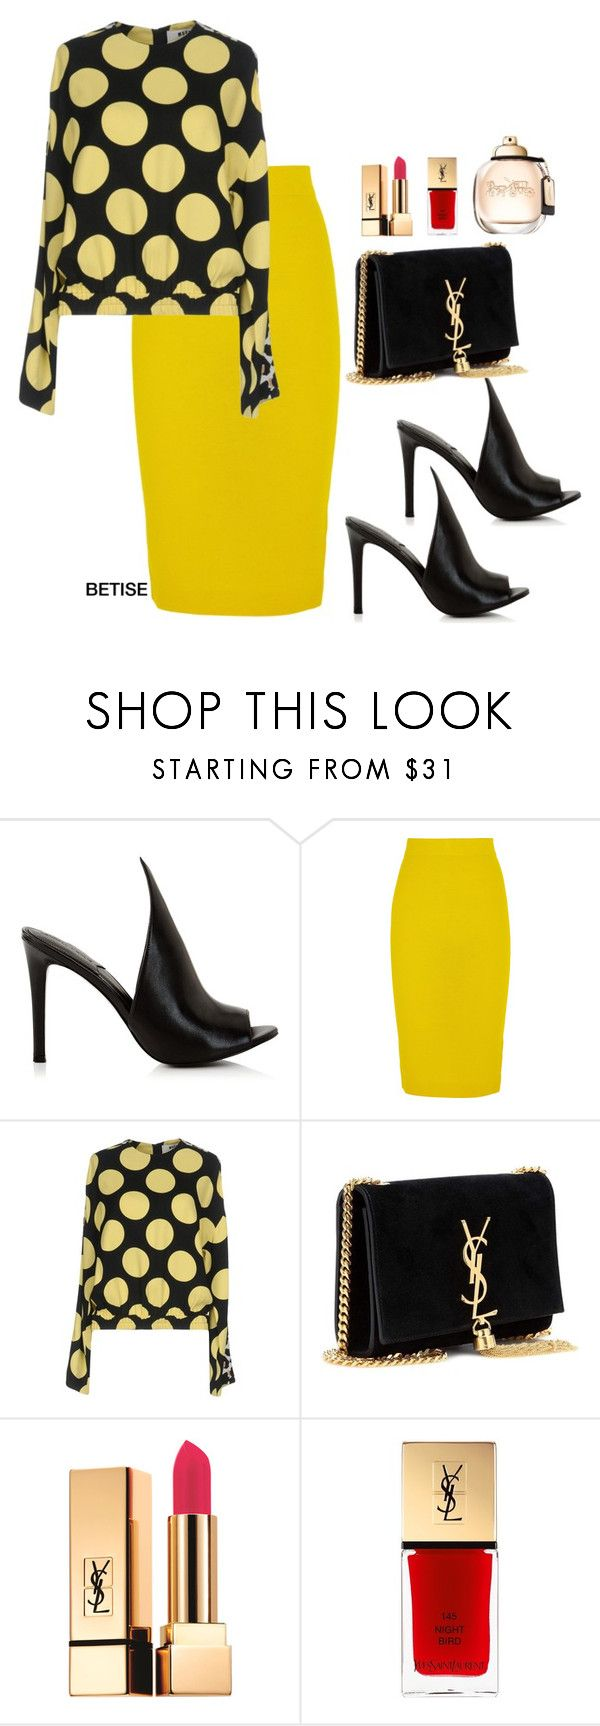 """""""POLKA DOT....... GEANT 💛"""" by betty-sanga ❤ liked on Polyvore featuring Kendall + Kylie, J.Crew, MSGM and Yves Saint Laurent"""